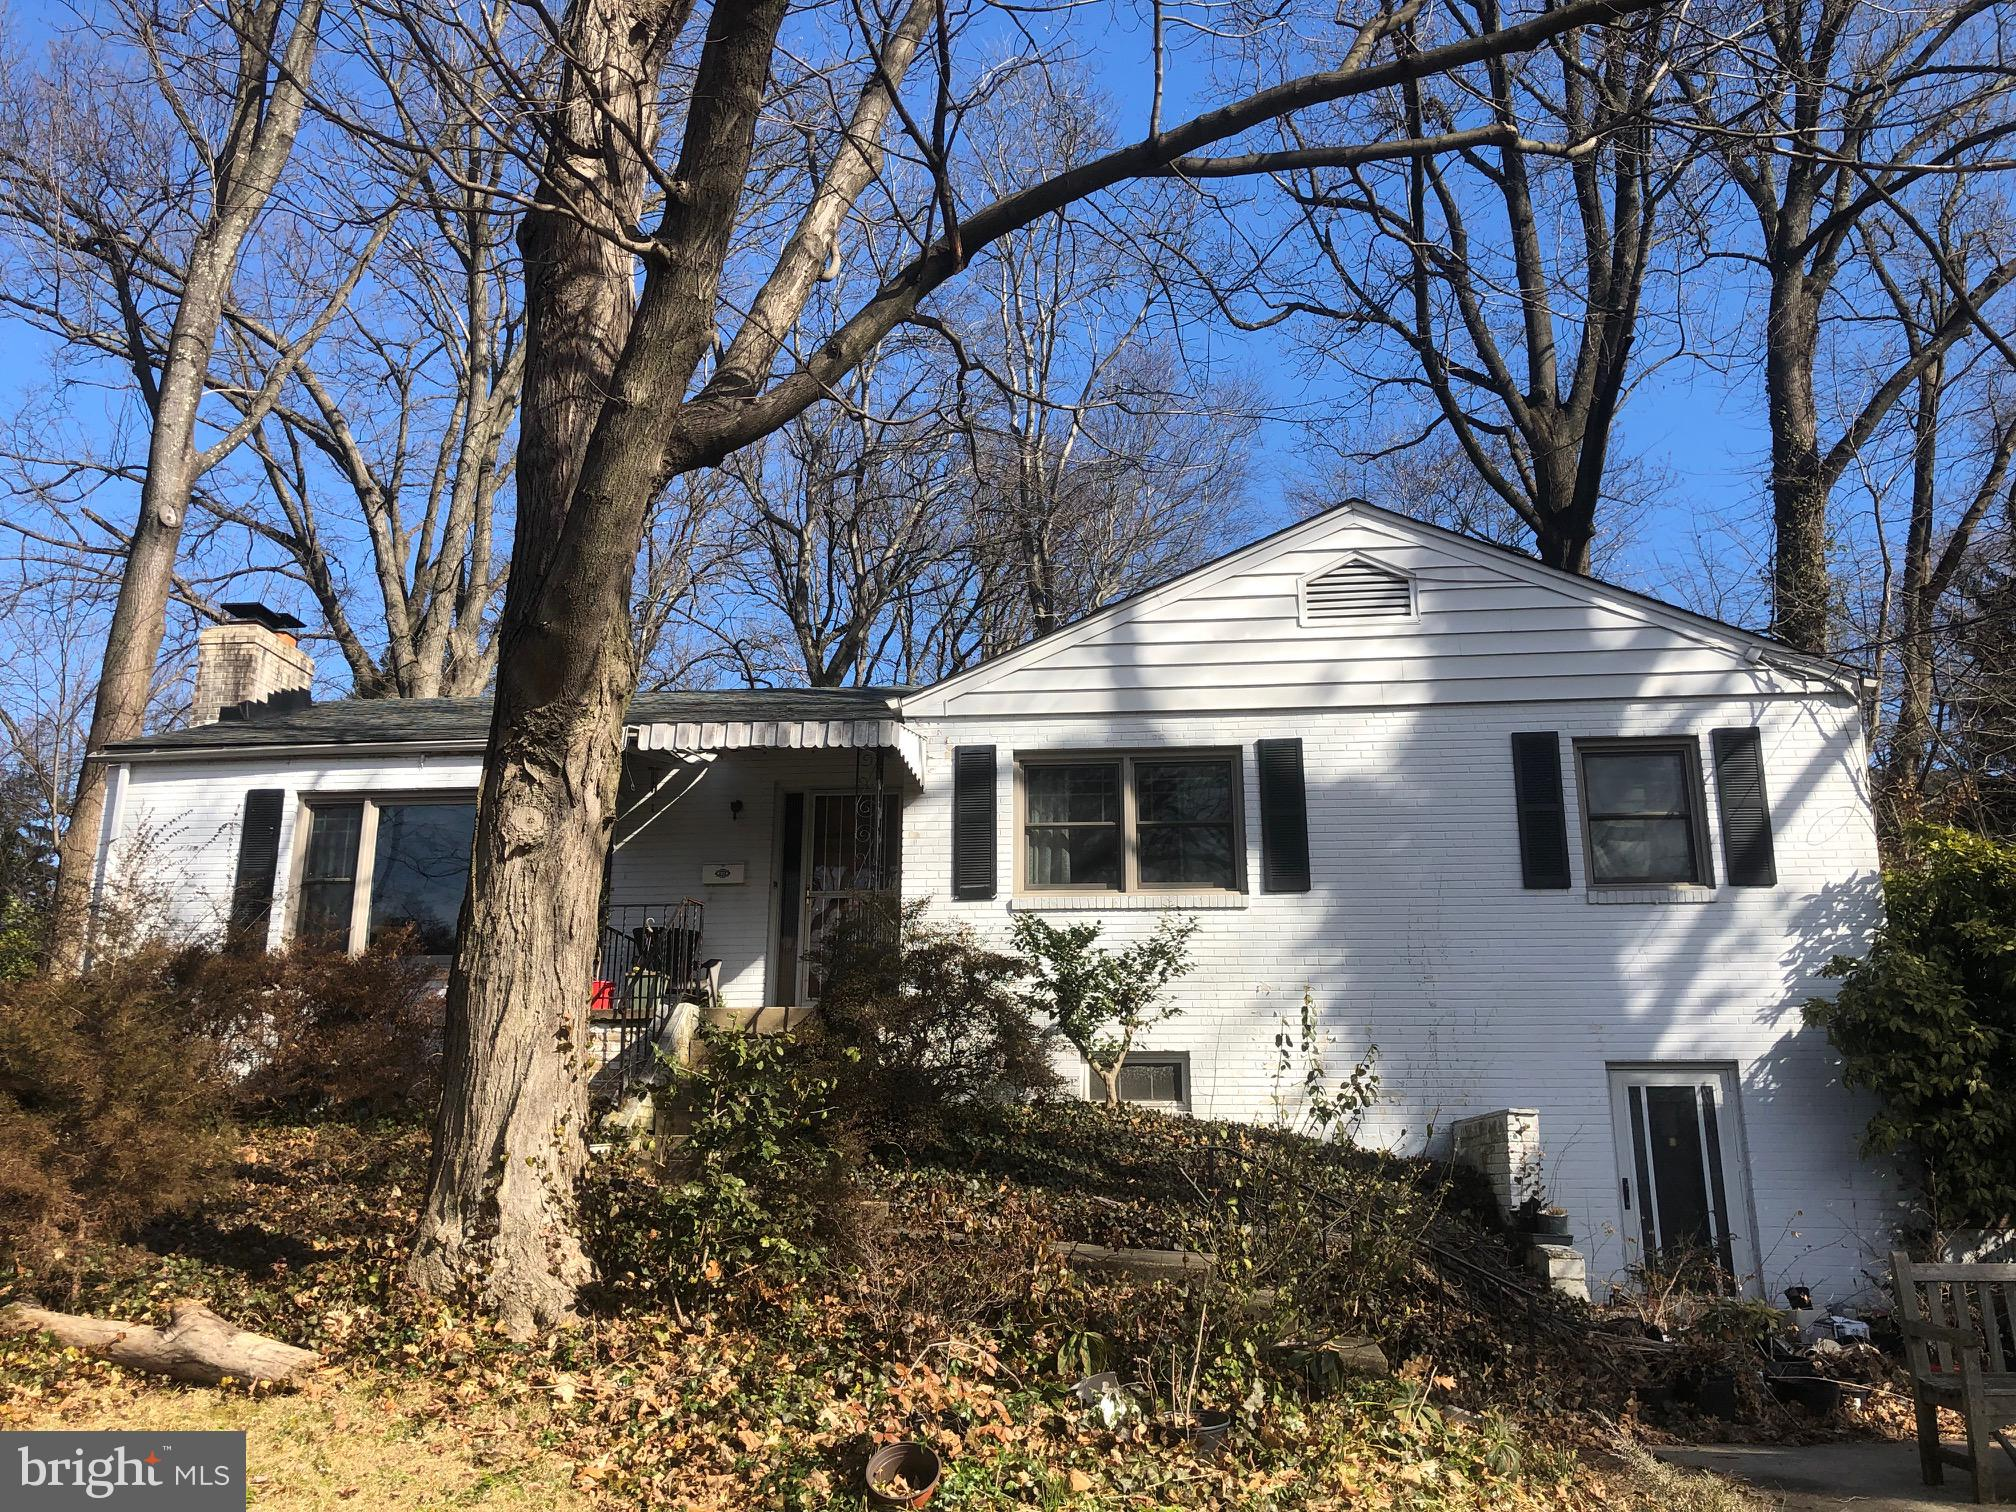 707 E BROAD STREET, FALLS CHURCH, VA 22046